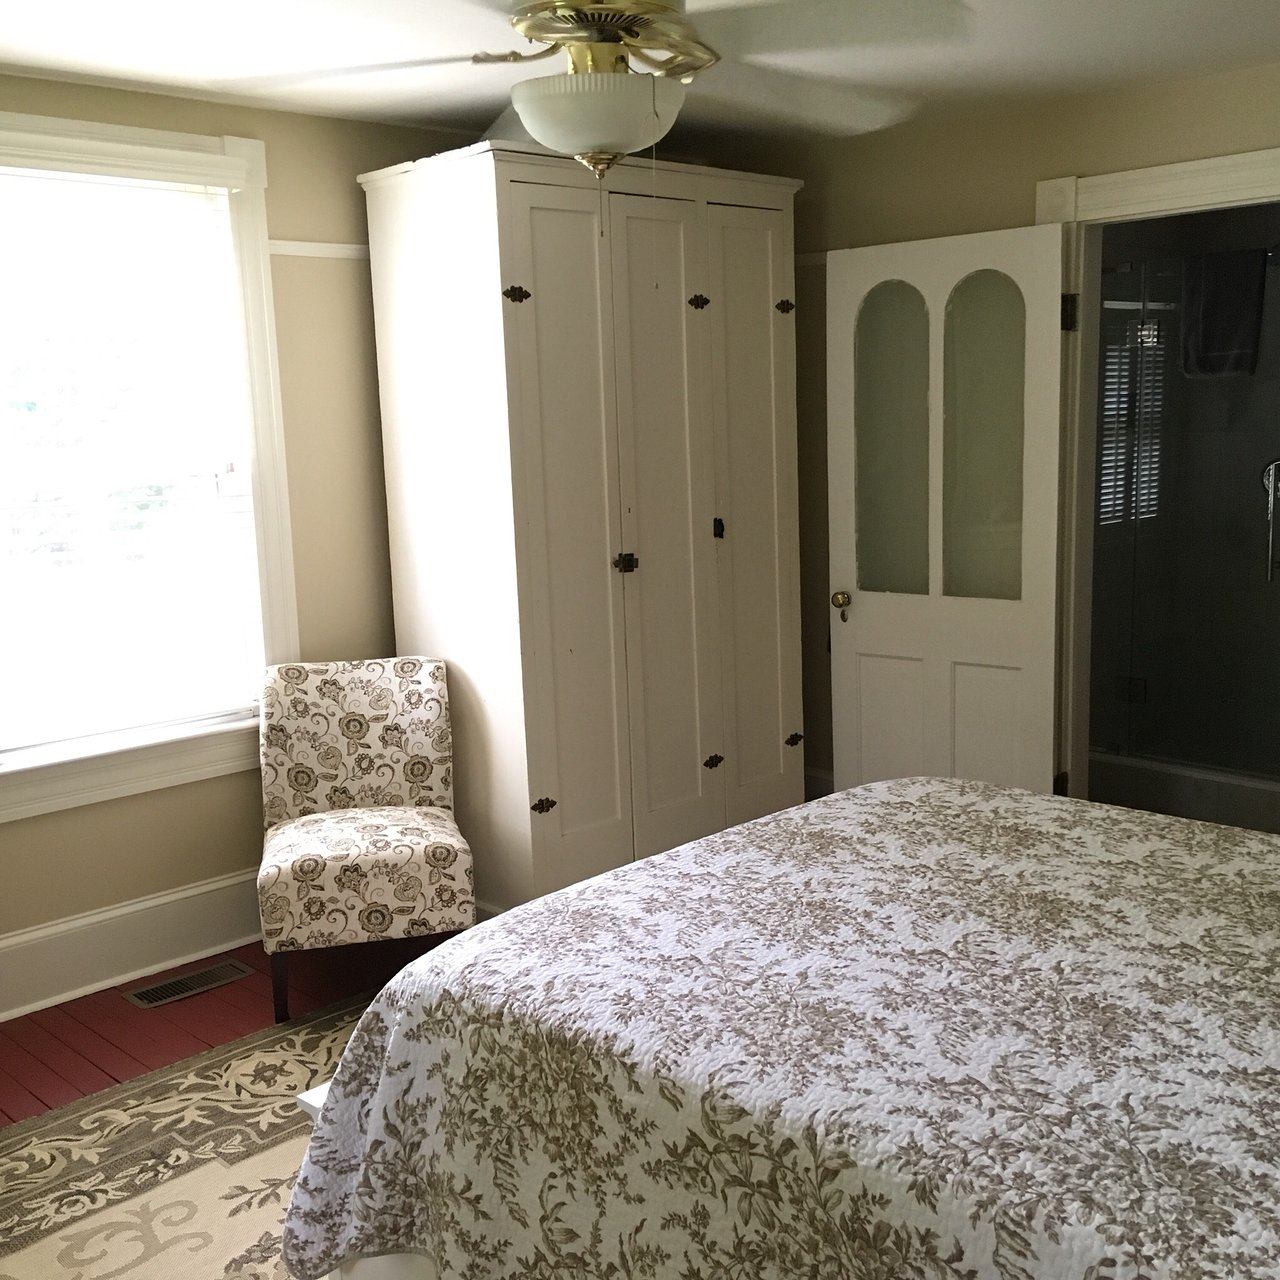 WHITE PIG BED AND BREAKFAST Updated